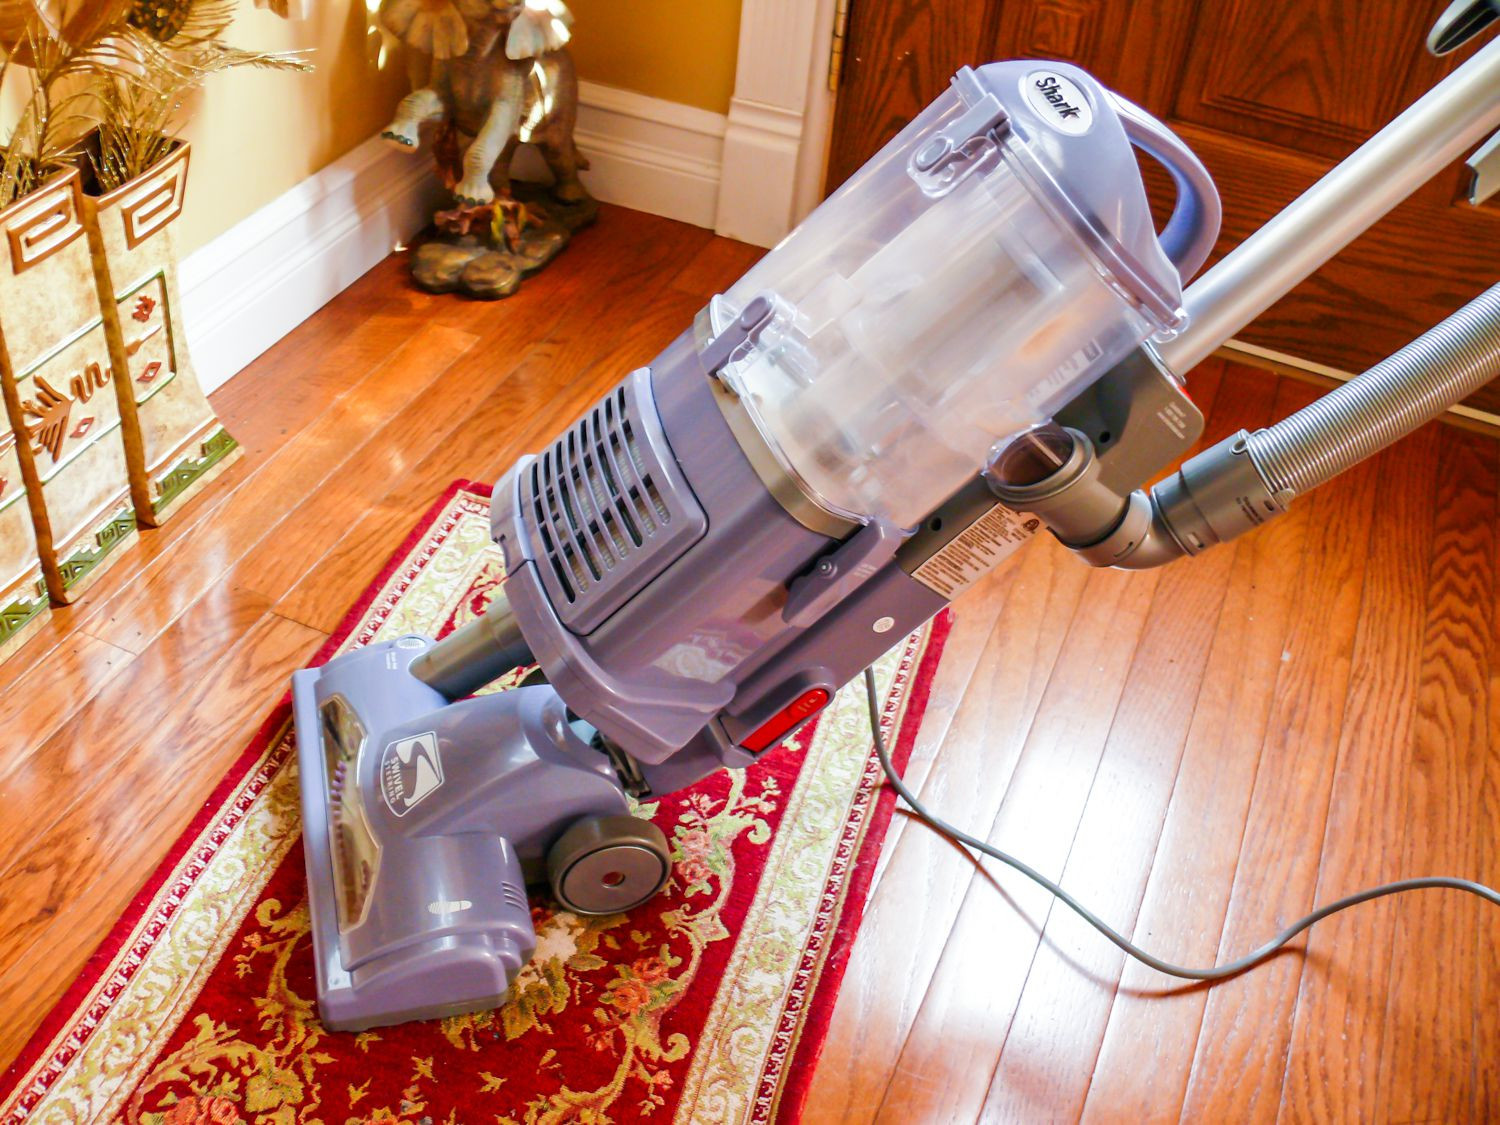 best vacuum cleaner for pets and hardwood floors of the 10 best vacuum cleaners to buy in 2018 with regard to 4062974 2 2 5bbf718a46e0fb00519d59a7